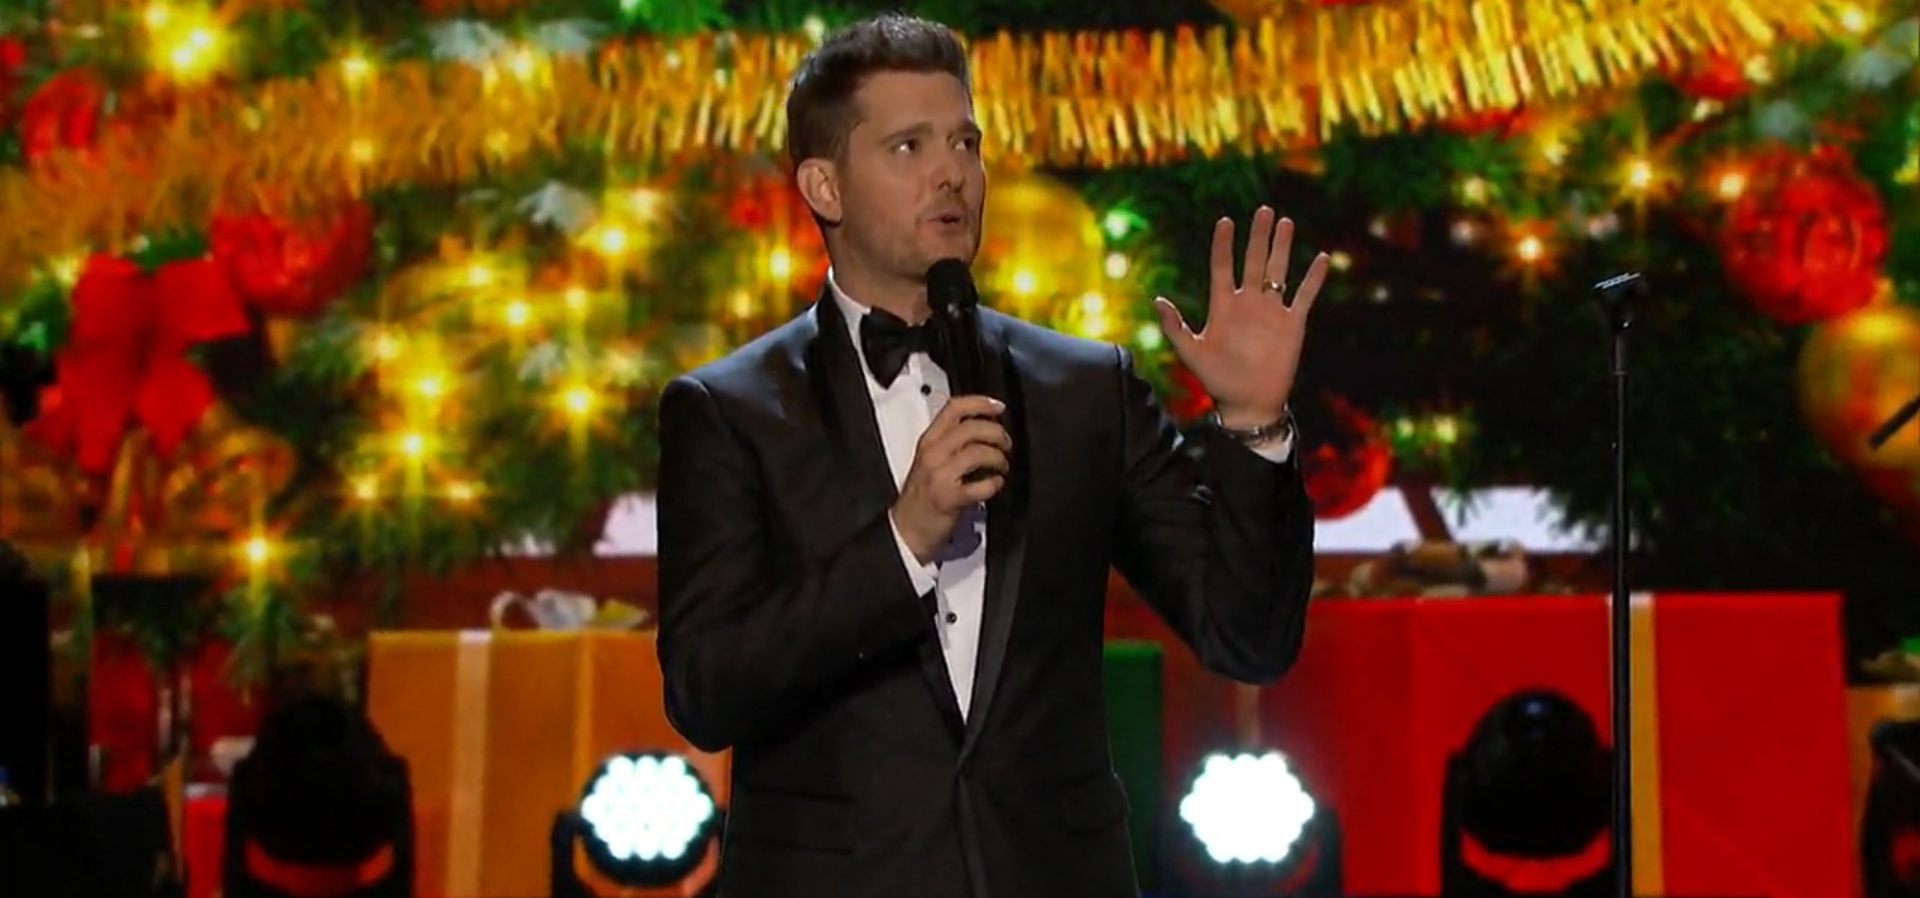 Michael Bublé's Christmas in Hollywood | Canadian Music Blog